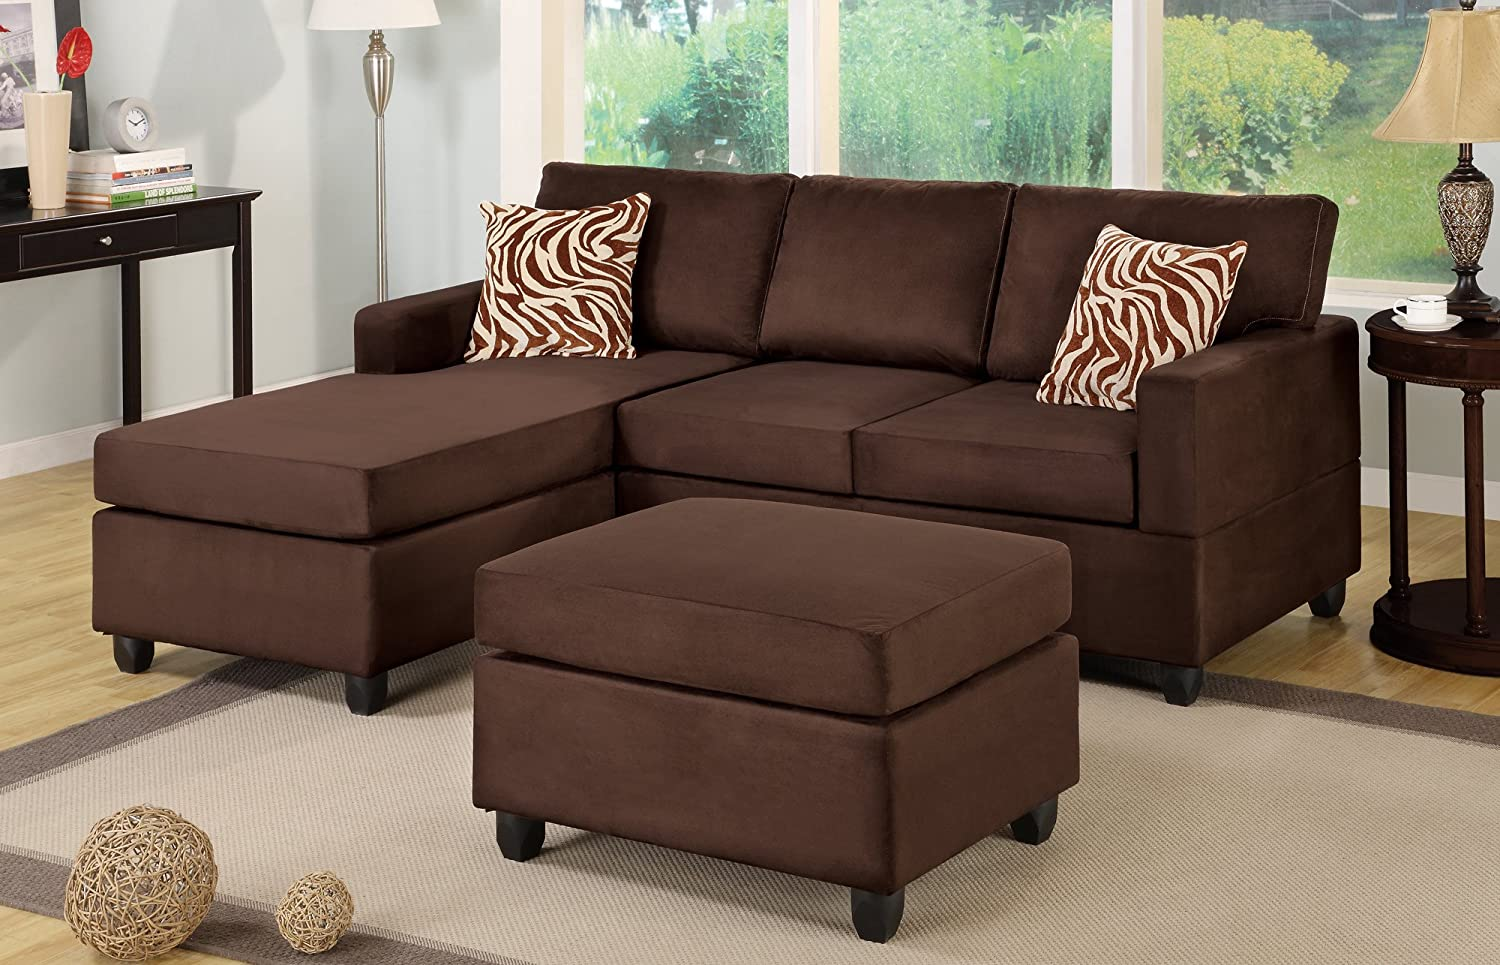 Chocolate Sectional Sofa Set With Chaise Hereo Sofa : 81ZzhiPhoSLSL1500 from hereonout.net size 1500 x 965 jpeg 285kB